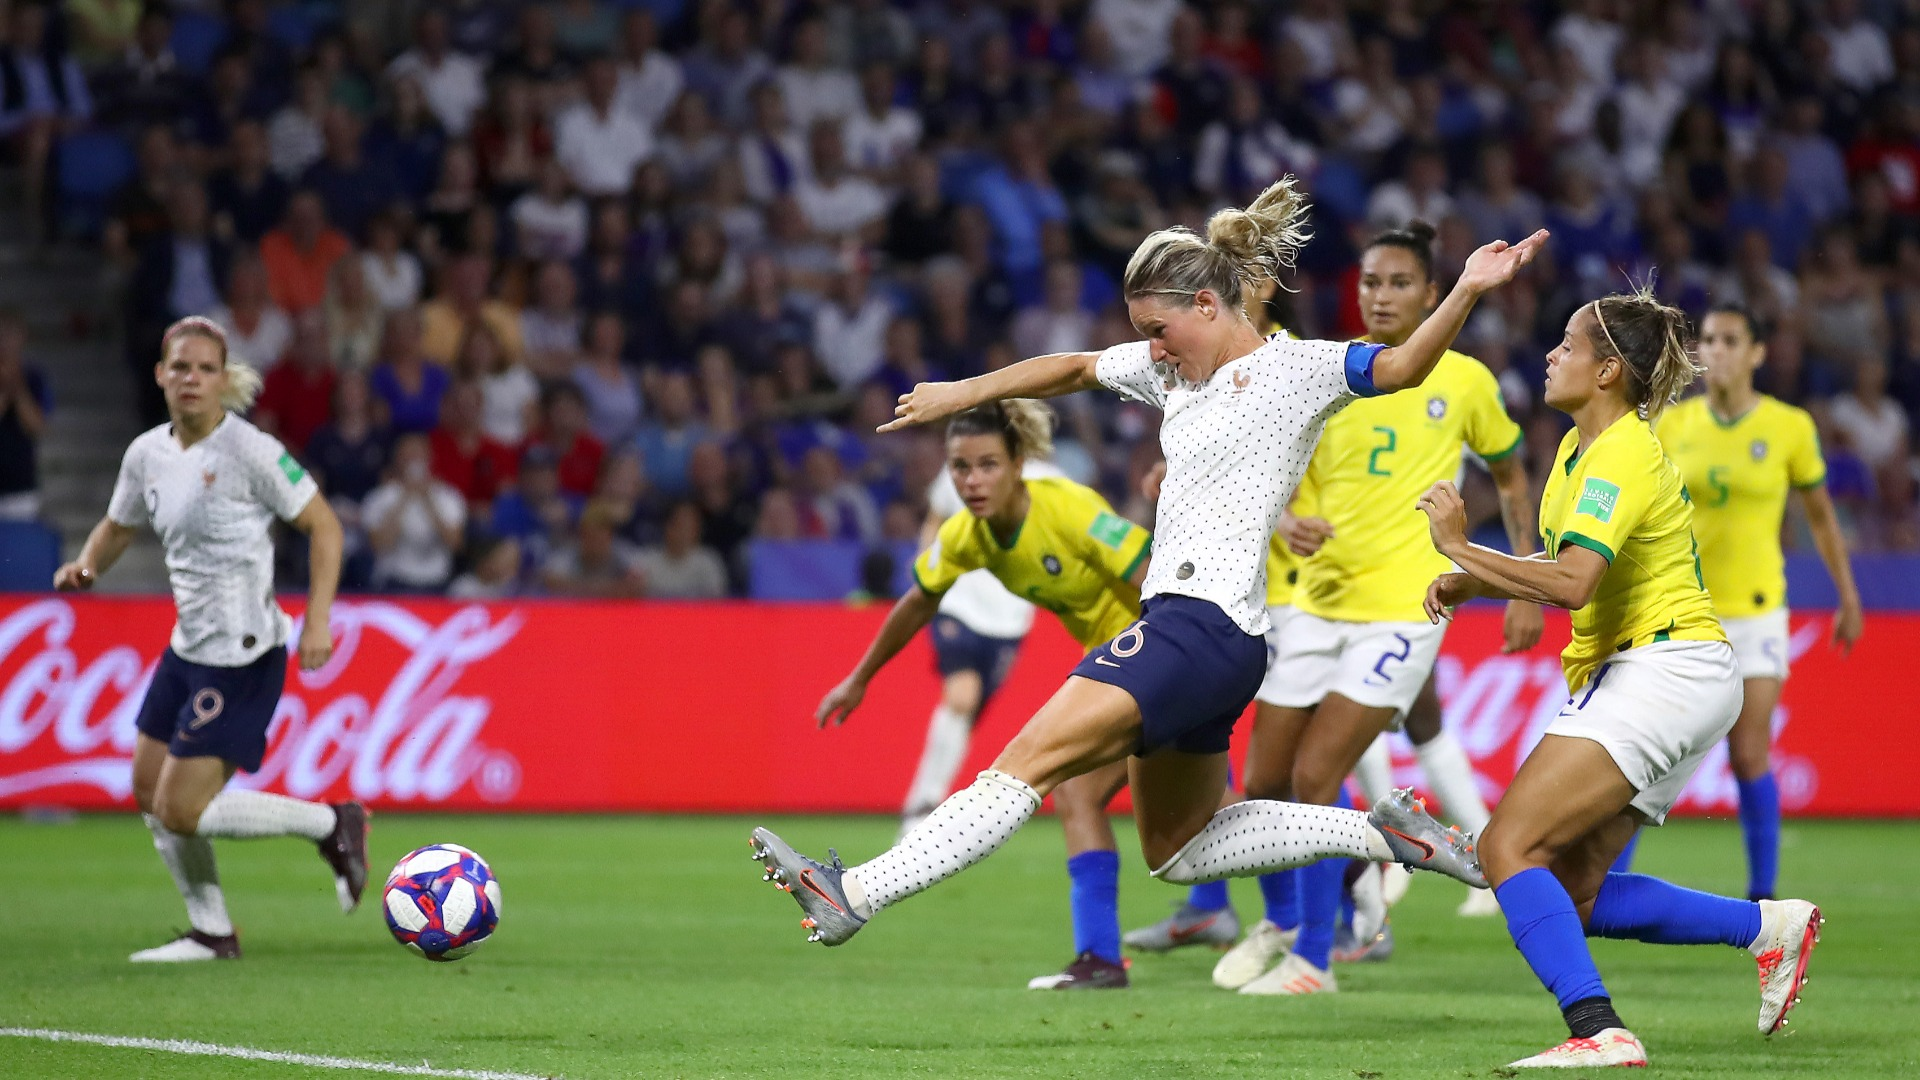 Women's World Cup 2019: Amandine Henry volleys France into last eight, ousts Brazil